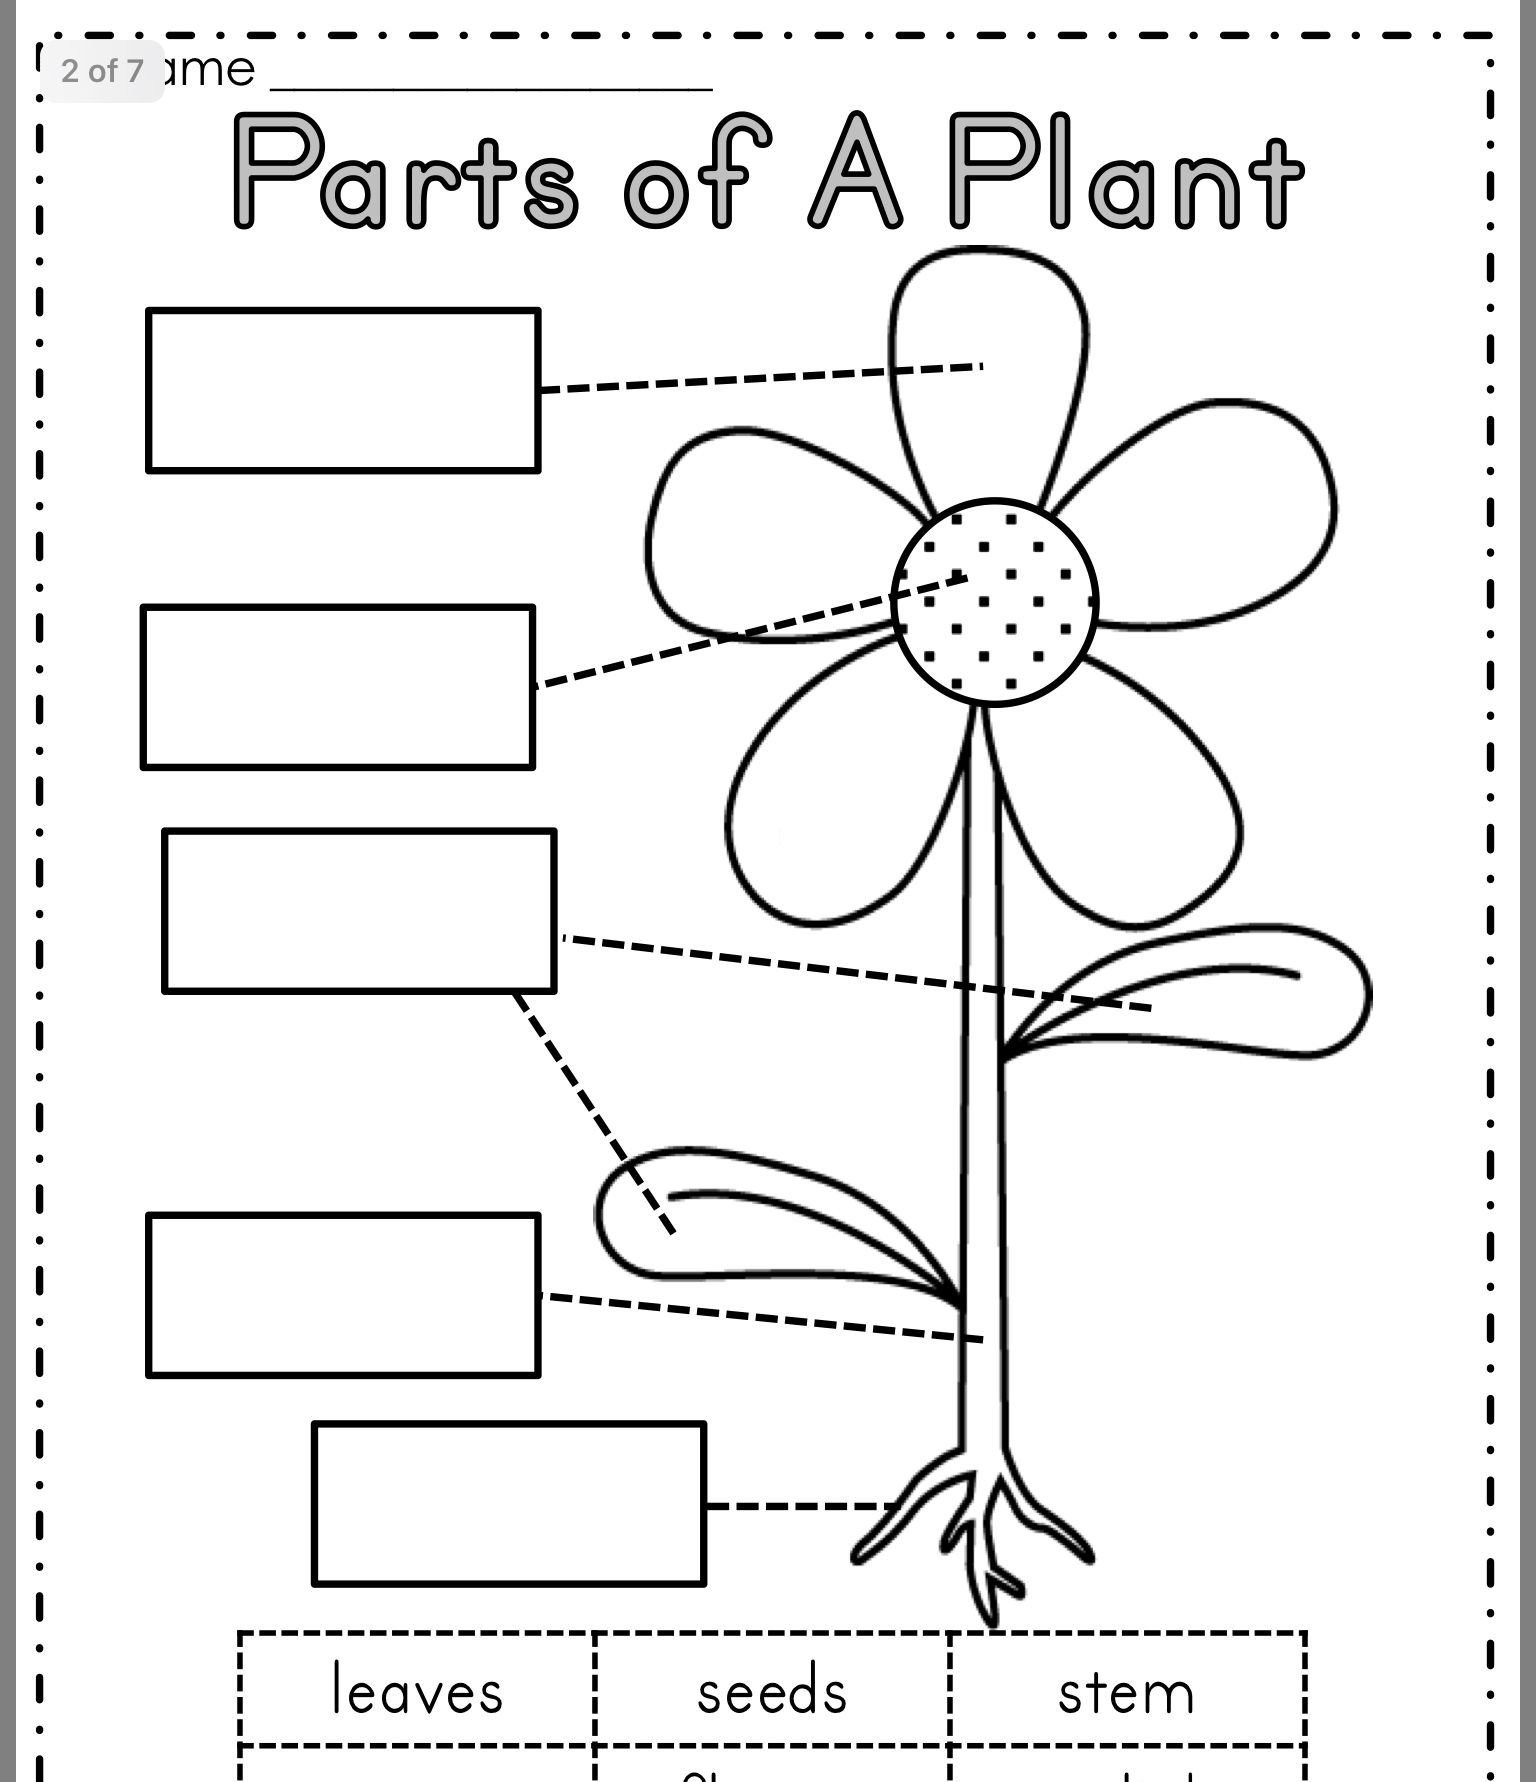 Parts Of A Plant Image By Anne Emmanuel On School